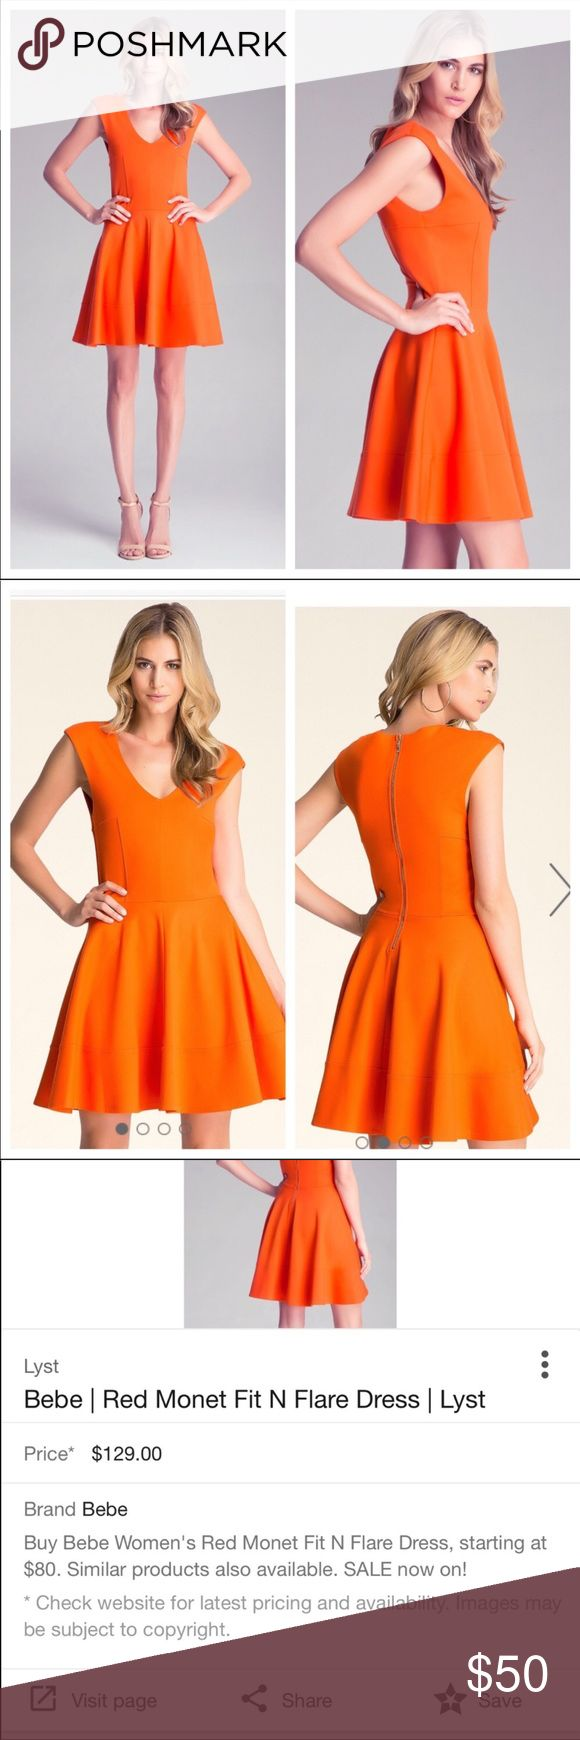 """""""Monet"""" Fit and Flare Dress NWOT. Bold, bright fiery orange. V neck circle dress features capped sleeves and falls perfectly in overlapping pleats. Full zippered back. 72% Viscose, 24% polyamide, 4% spandex. Center back to hem: 27"""" (68 cm). Model is 5'10"""" and wears a US size S. Perfect condition, worn only once. Size XXS but has a lot of wiggle room and could fit up to a size 4. Measurements provided upon request. Do you love.. 🌸  bcbgmaxazria 🌸  kate spade 🌸  theory 🌸  asos 🌸…"""